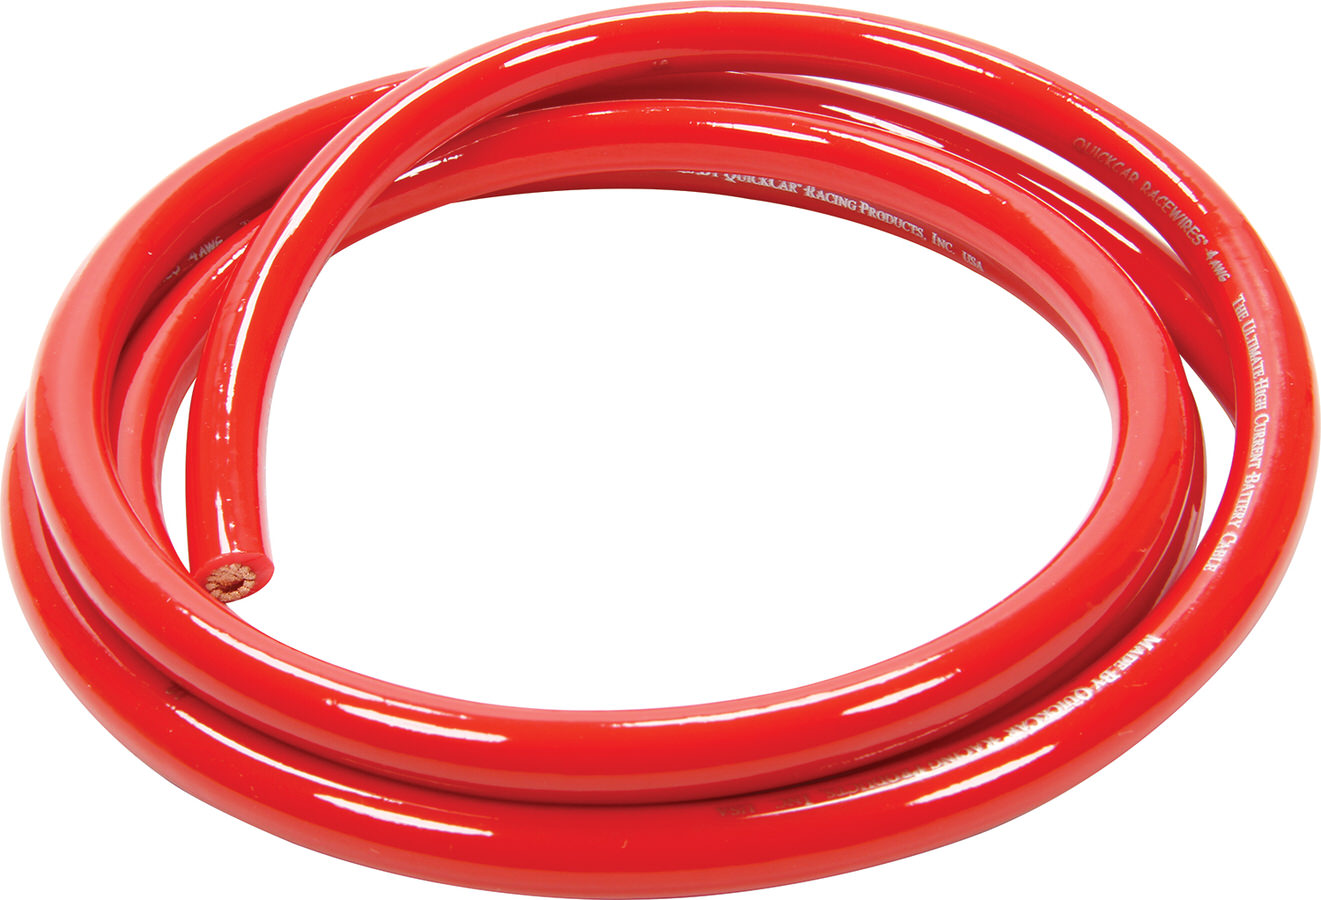 Motorcycle & ATV Quickcar Racing Products 57-520 5/16 Hole Power Ring for 4-Gauge Cable